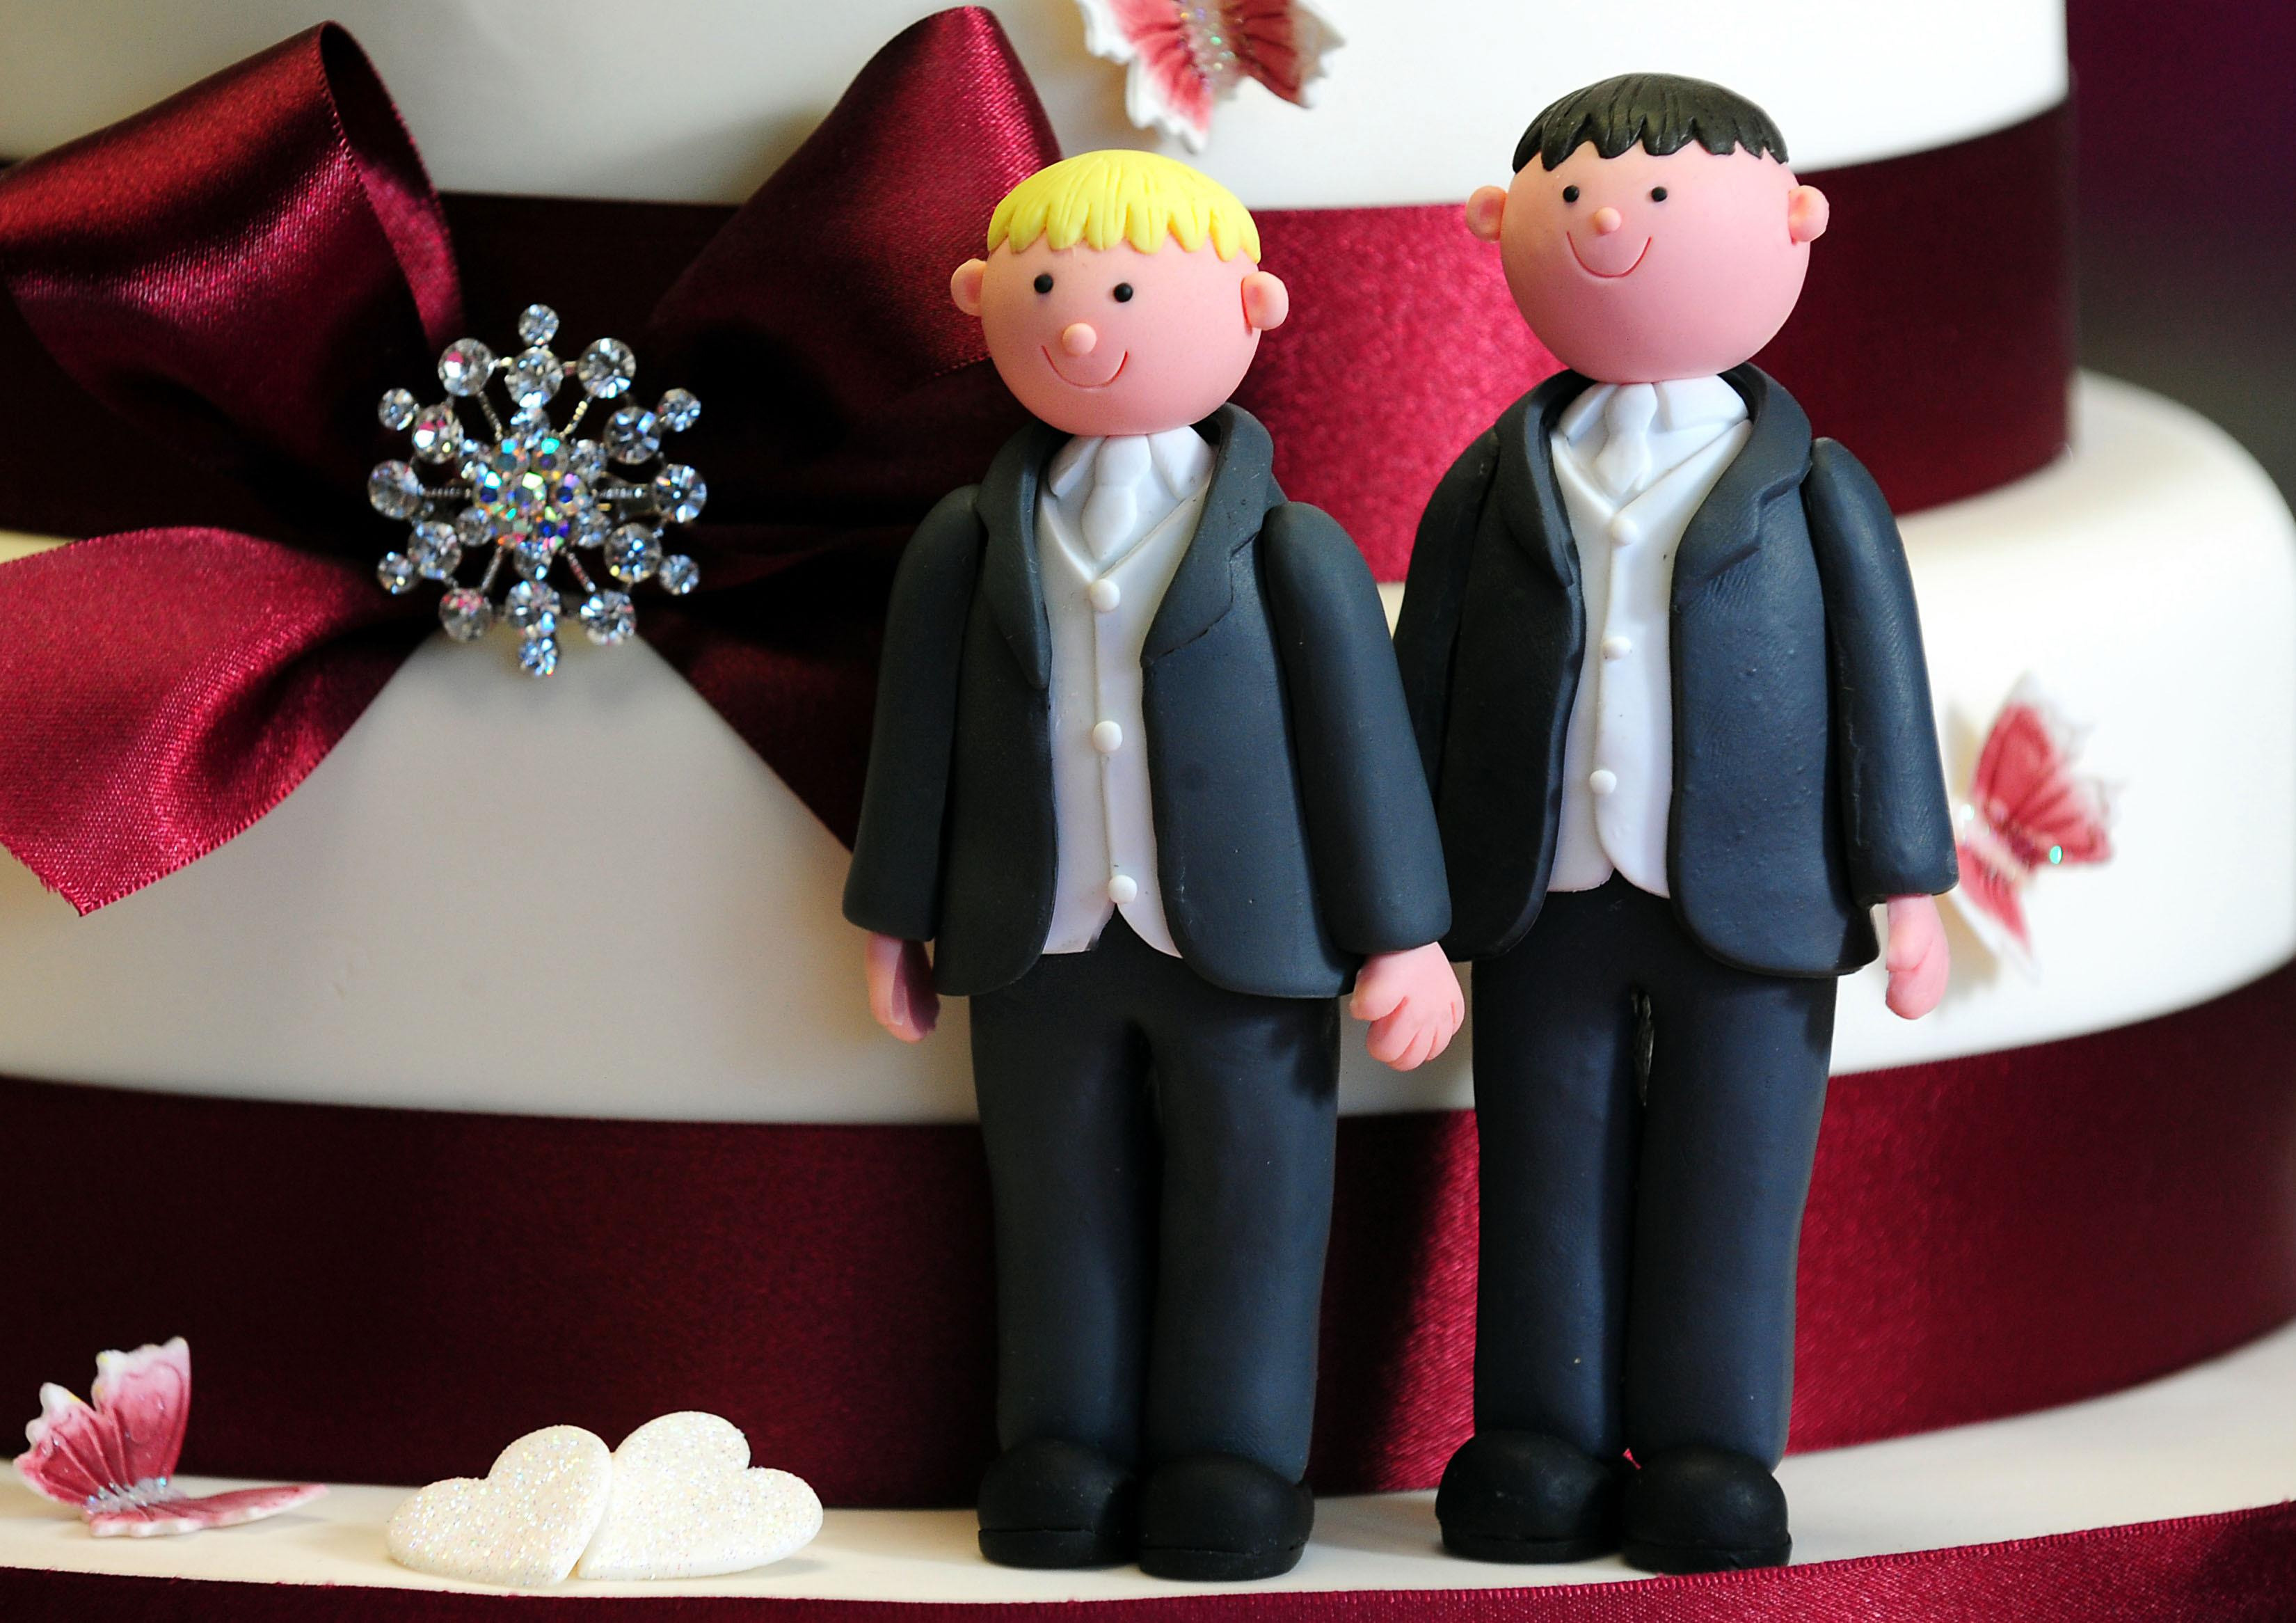 """File photo dated 05/02/13 of a general view of groom cake decorations on a wedding cake as plans to allow gay marriage look set to overcome their latest parliamentary hurdle this evening after Labour and the Government signalled they were ready to work together to defeat a backbench bid to wreck the legislation in the House of Commons.. Issue date: Tuesday May 21, 2013. A source close to Culture Secretary Maria Miller said she was """"very relaxed"""" about a Labour proposal for an immediate consultation on extending civil partnerships to heterosexual couples, designed to defuse Tory backbench demands for straight couples to be given equality with homosexuals and lesbians in this area. The deal means that the first same-sex marriages could take place as early as next summer if the Marriage (Same Sex Couples) Bill clears the House of Lords, where it is expected to meet stiff resistance. See PA story POLITICS Gay. Photo credit should read: Rui Vieira/PA Wire"""